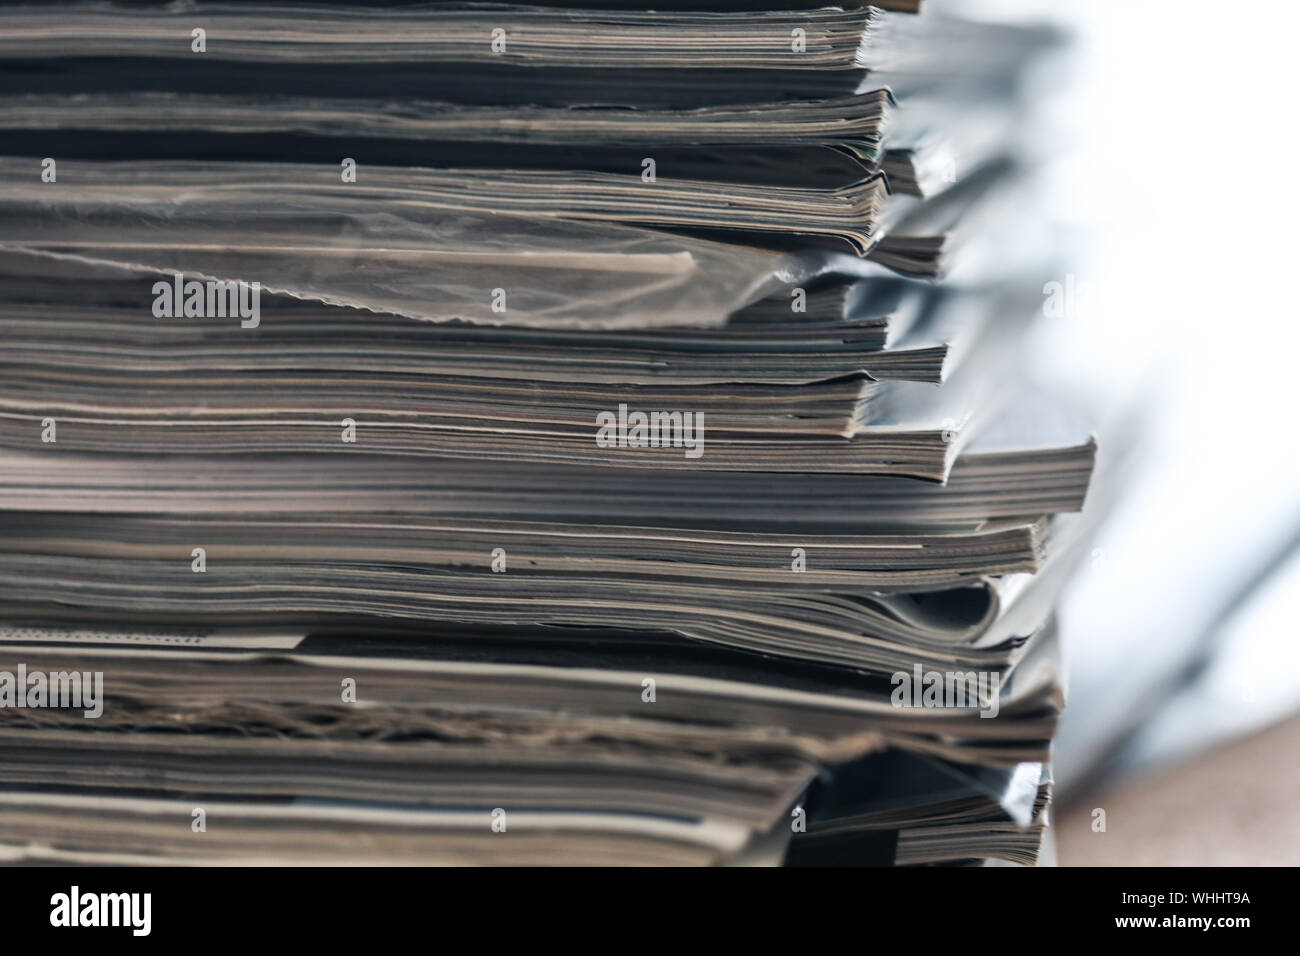 A stack of magazines, close-up macro filled the frame. A background for publishing or informational articles. Stock Photo